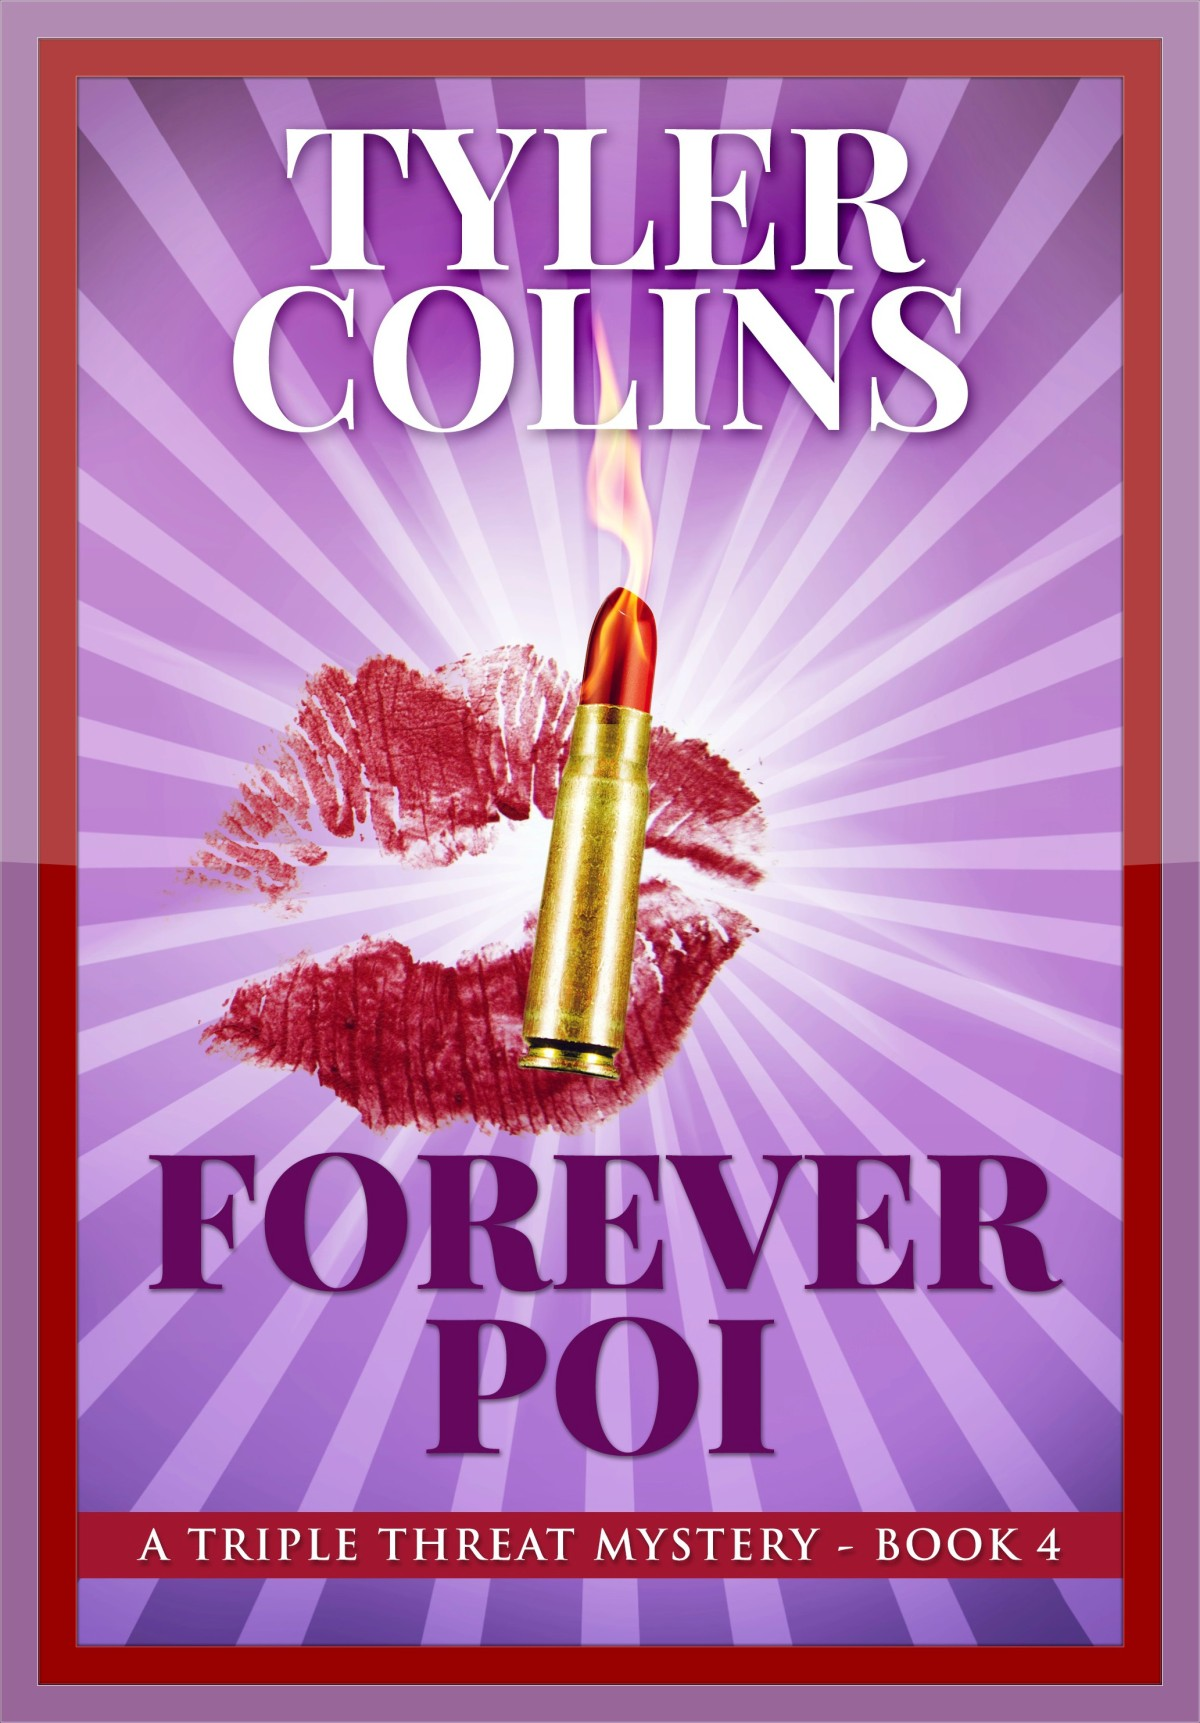 Day Two for You – Forever Poi at a Discount